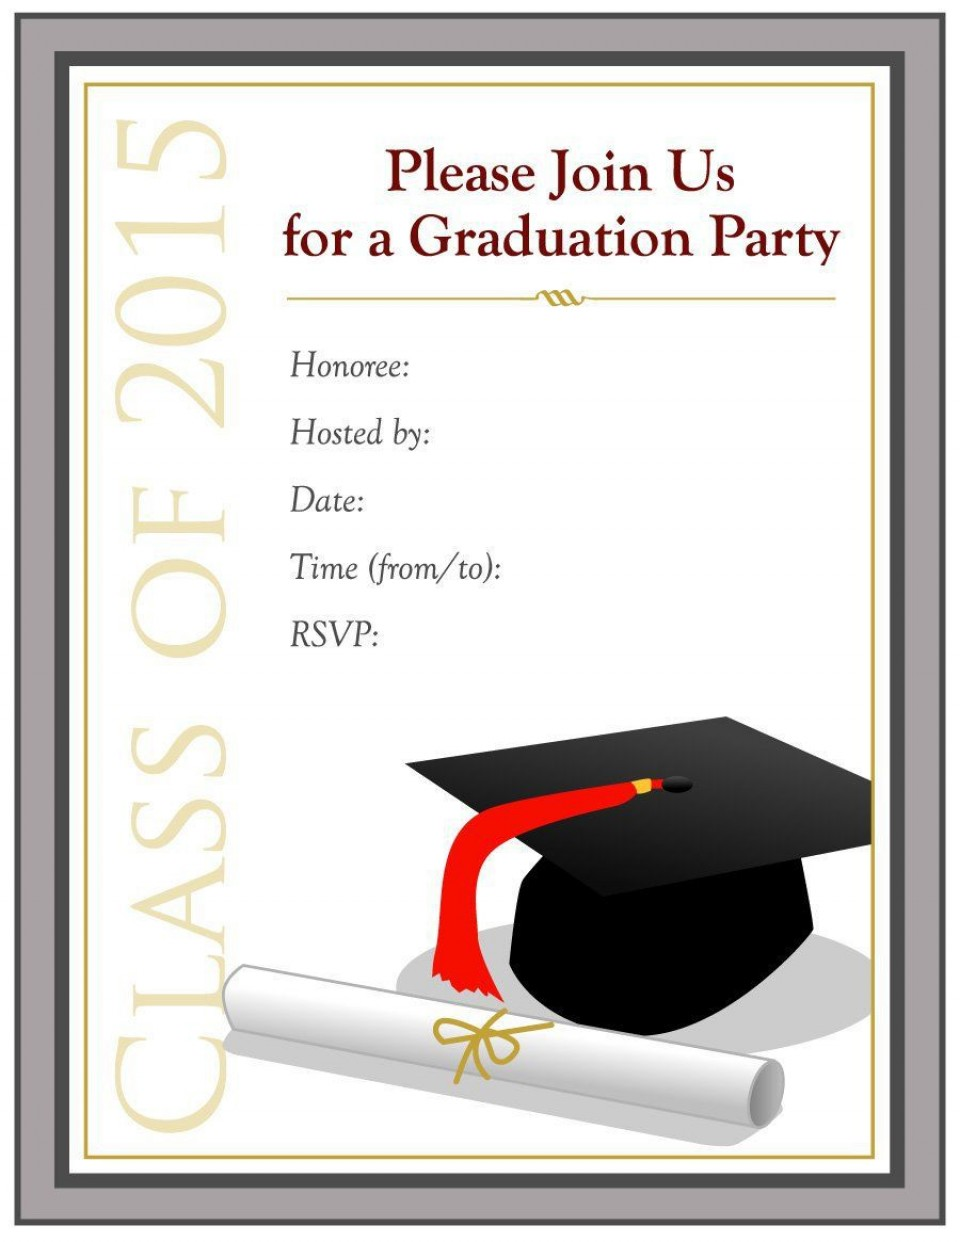 002 Remarkable Microsoft Word Graduation Party Invitation Template Design 960